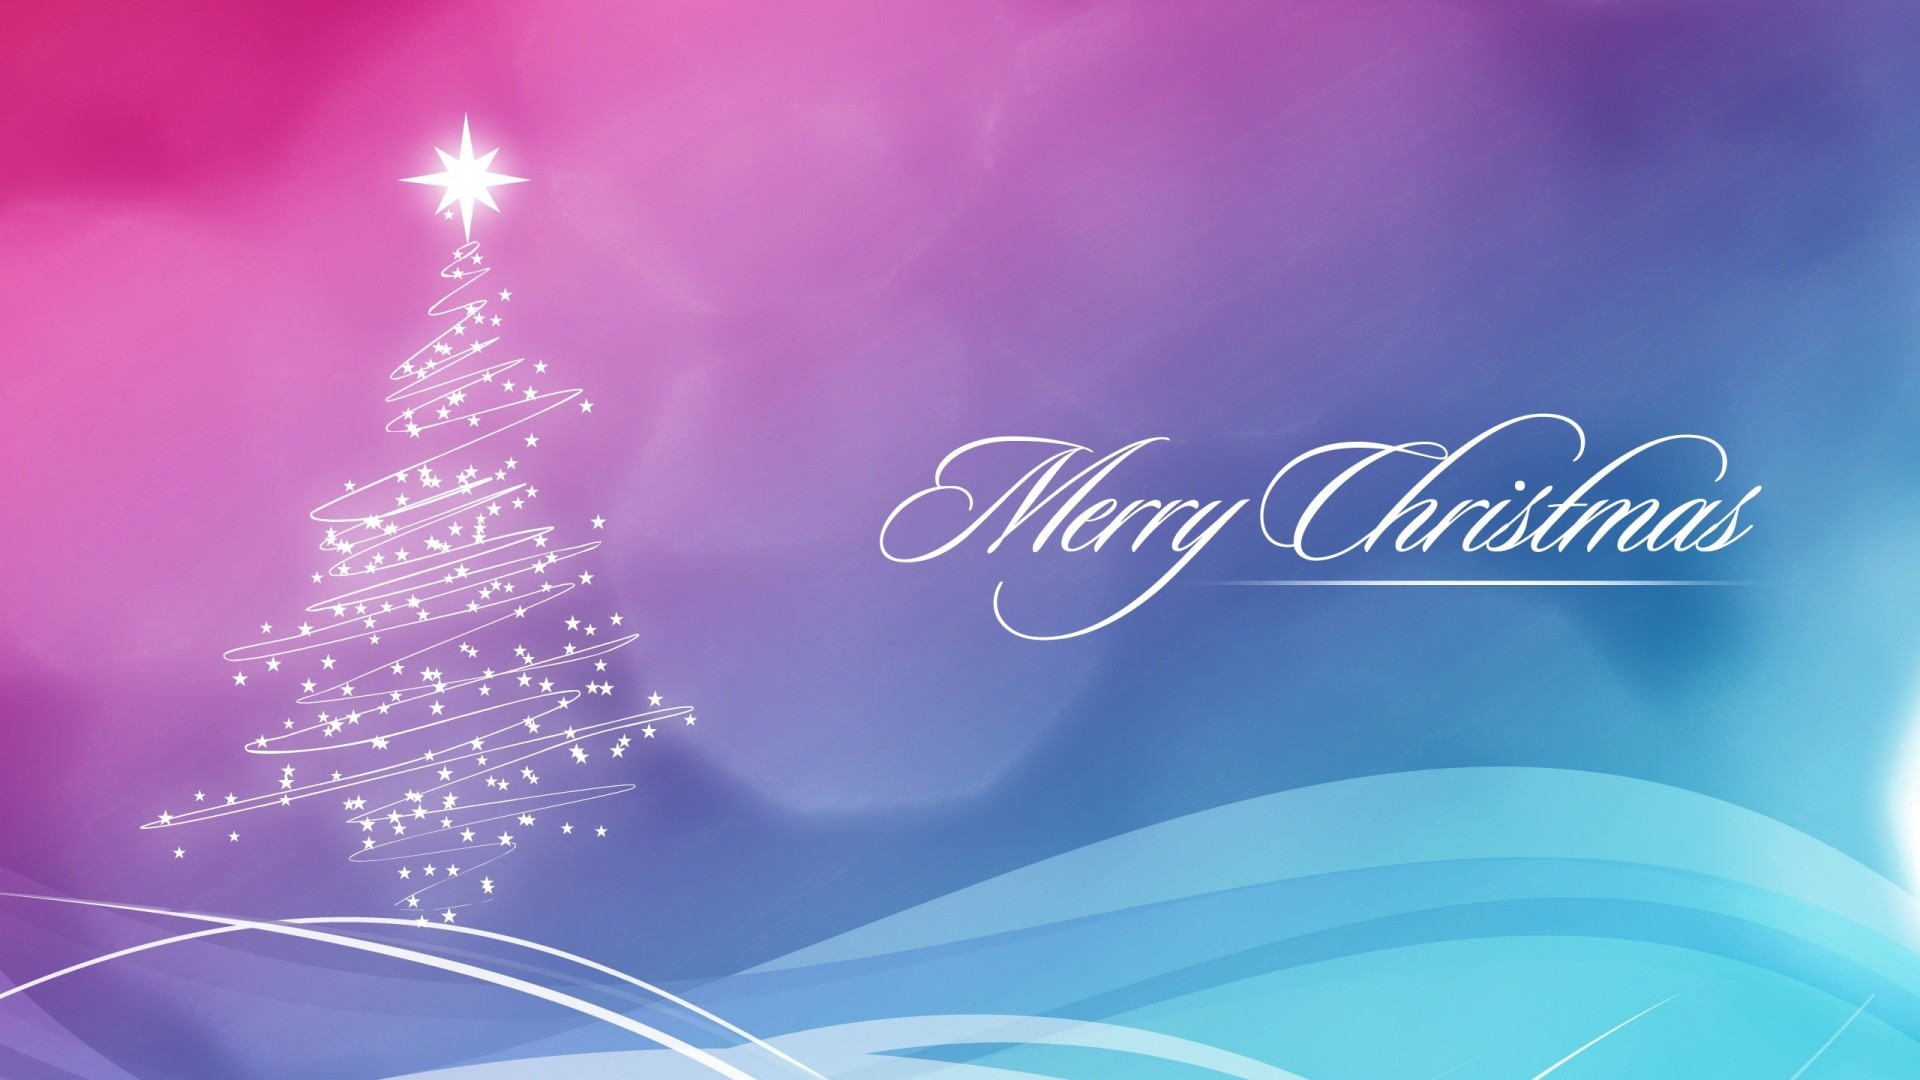 Christmas Greeting. How to set wallpaper on your desktop? Click  the download link from above and set the wallpaper on the desktop from your  OS.